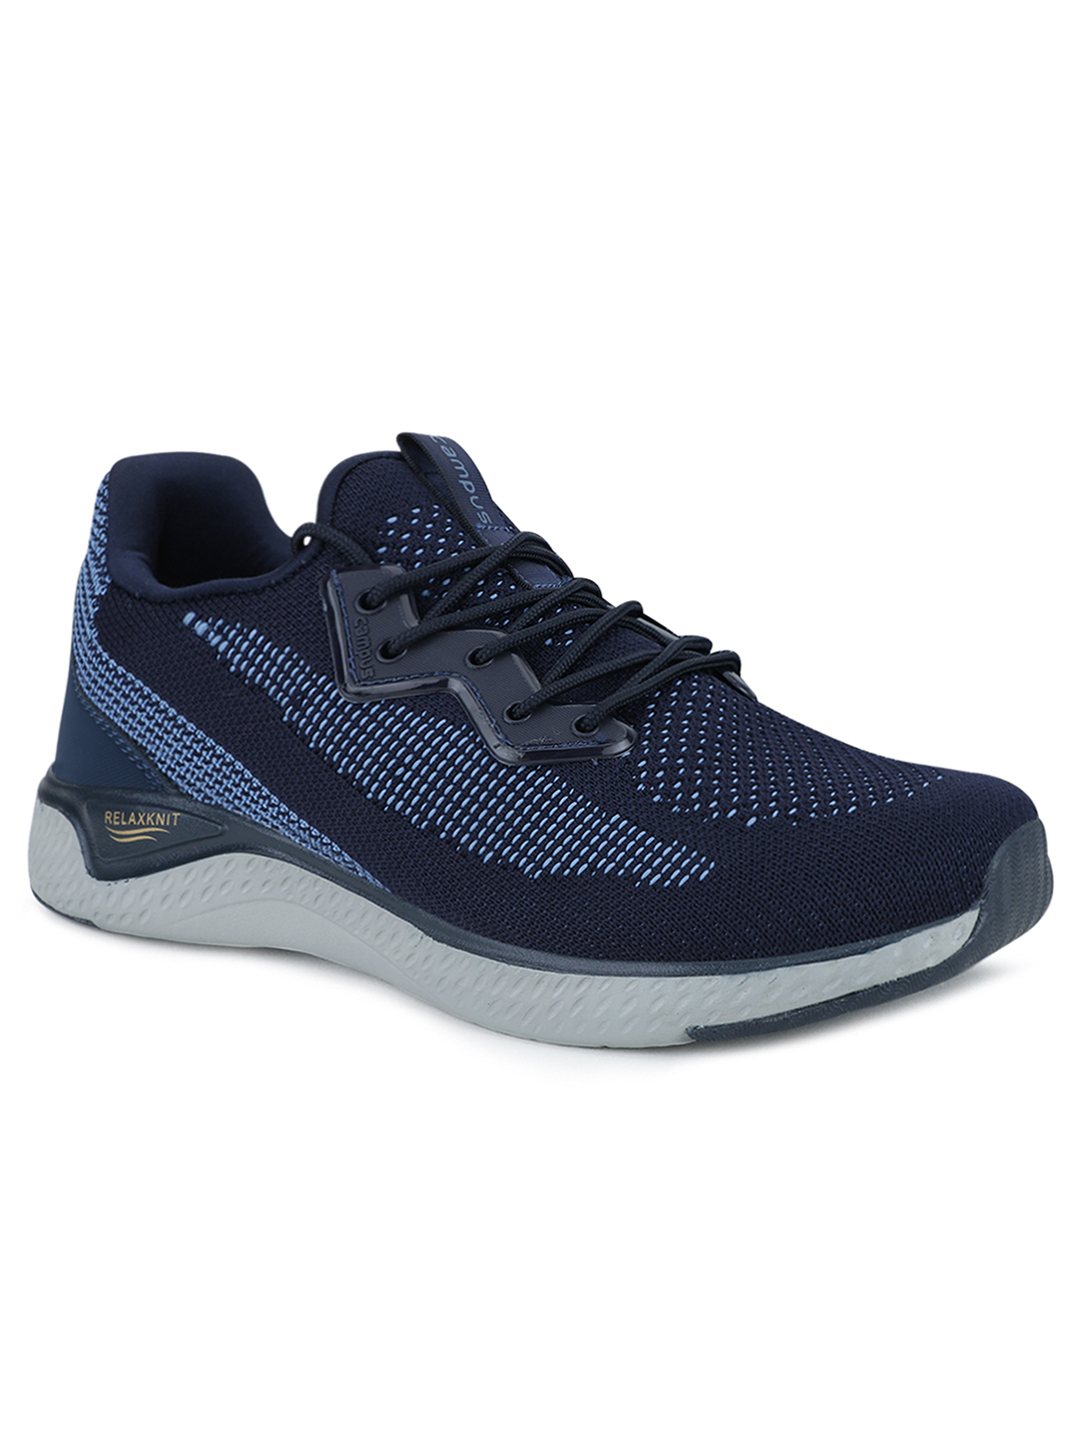 Campus Shoes   Navy Admon Running Shoes